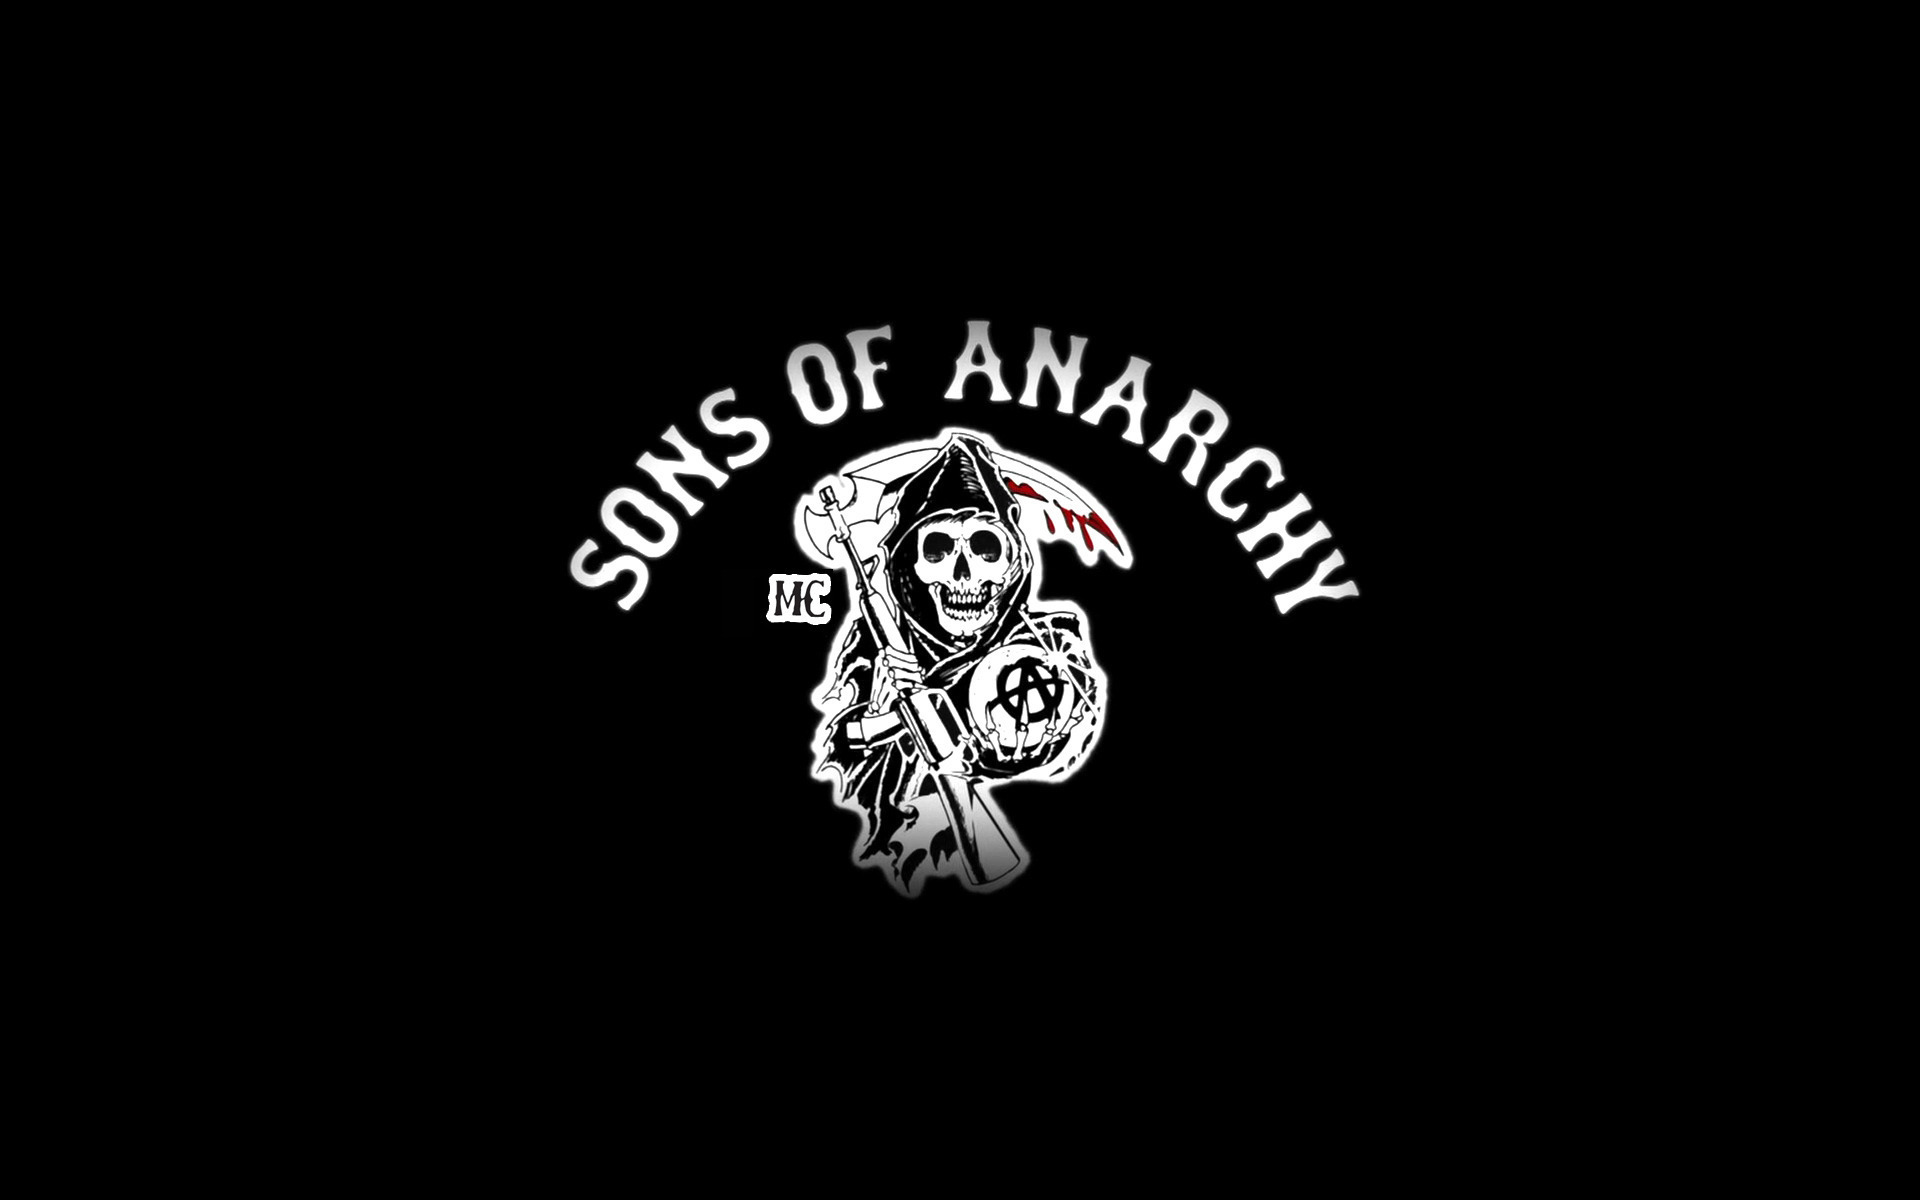 19844 download wallpaper Logos, Cinema, Background, Sons Of Anarchy screensavers and pictures for free